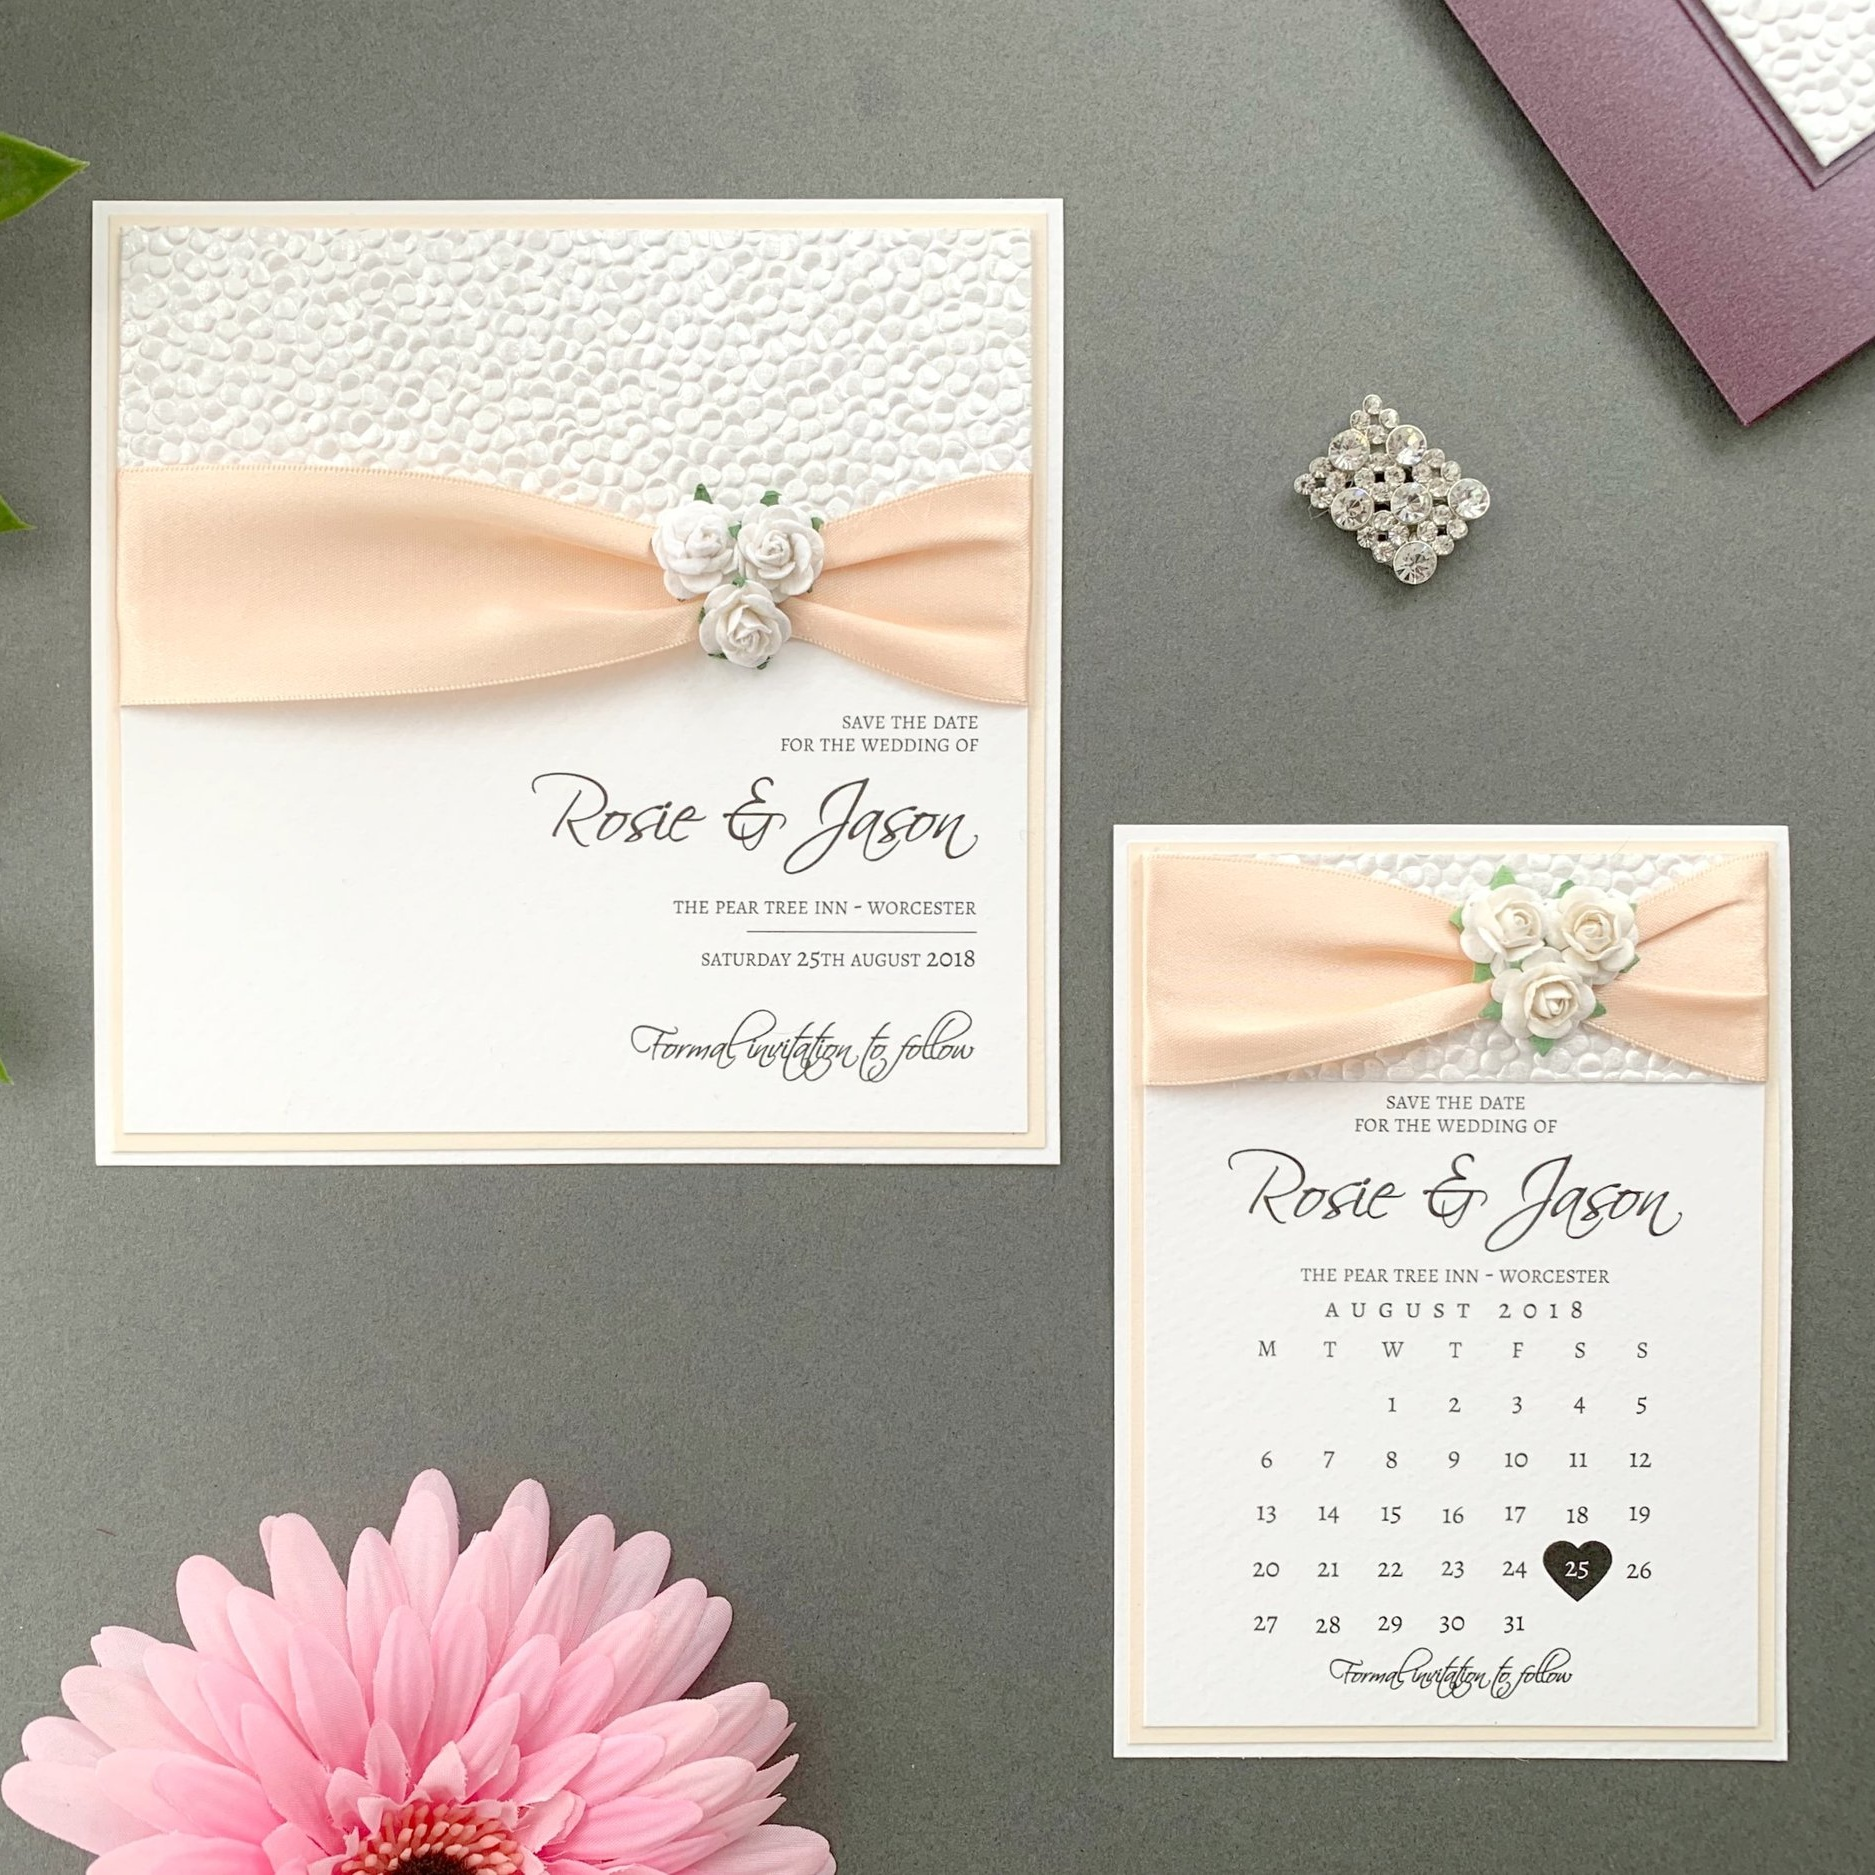 Phoebe Save The Date Card and calendar